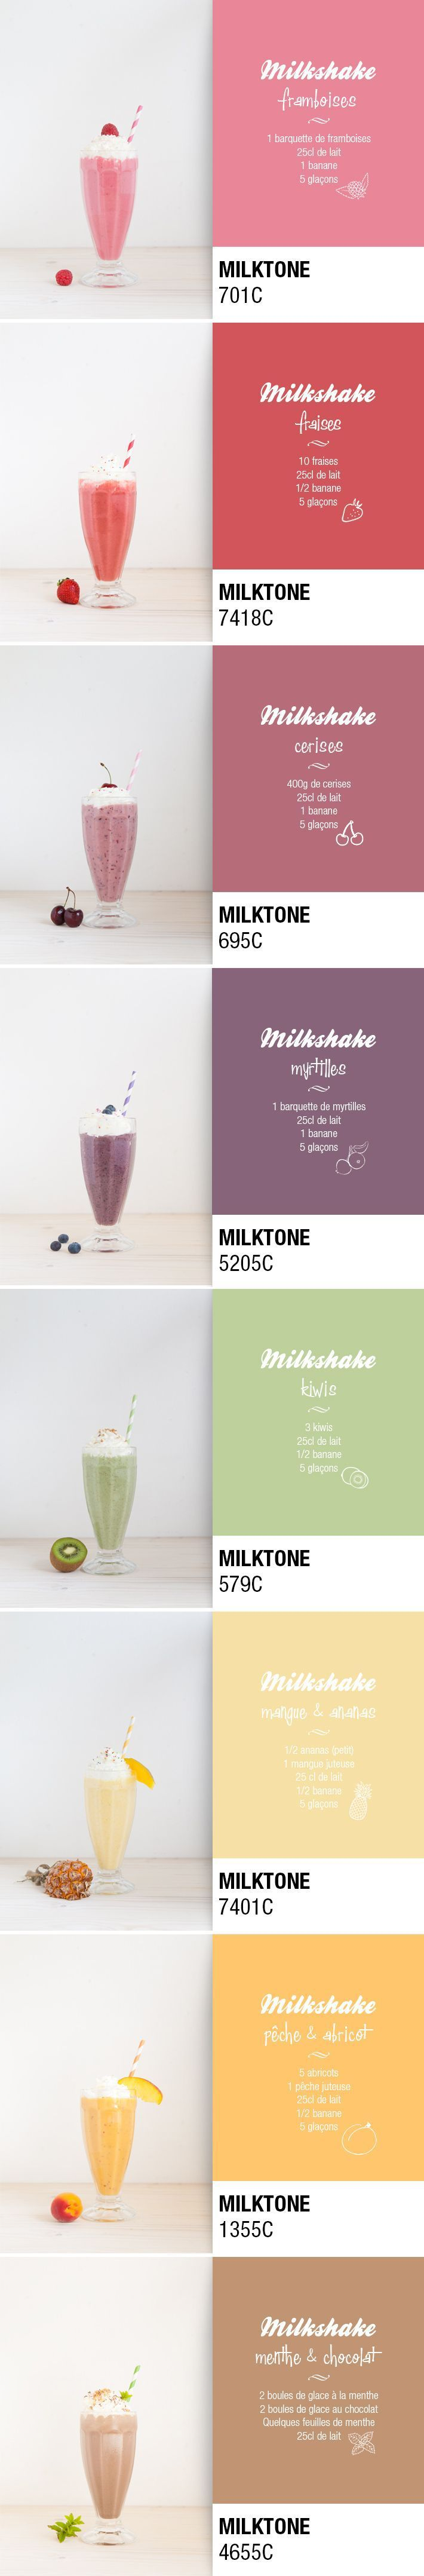 One milkshake a day... Ma palette de vitamines